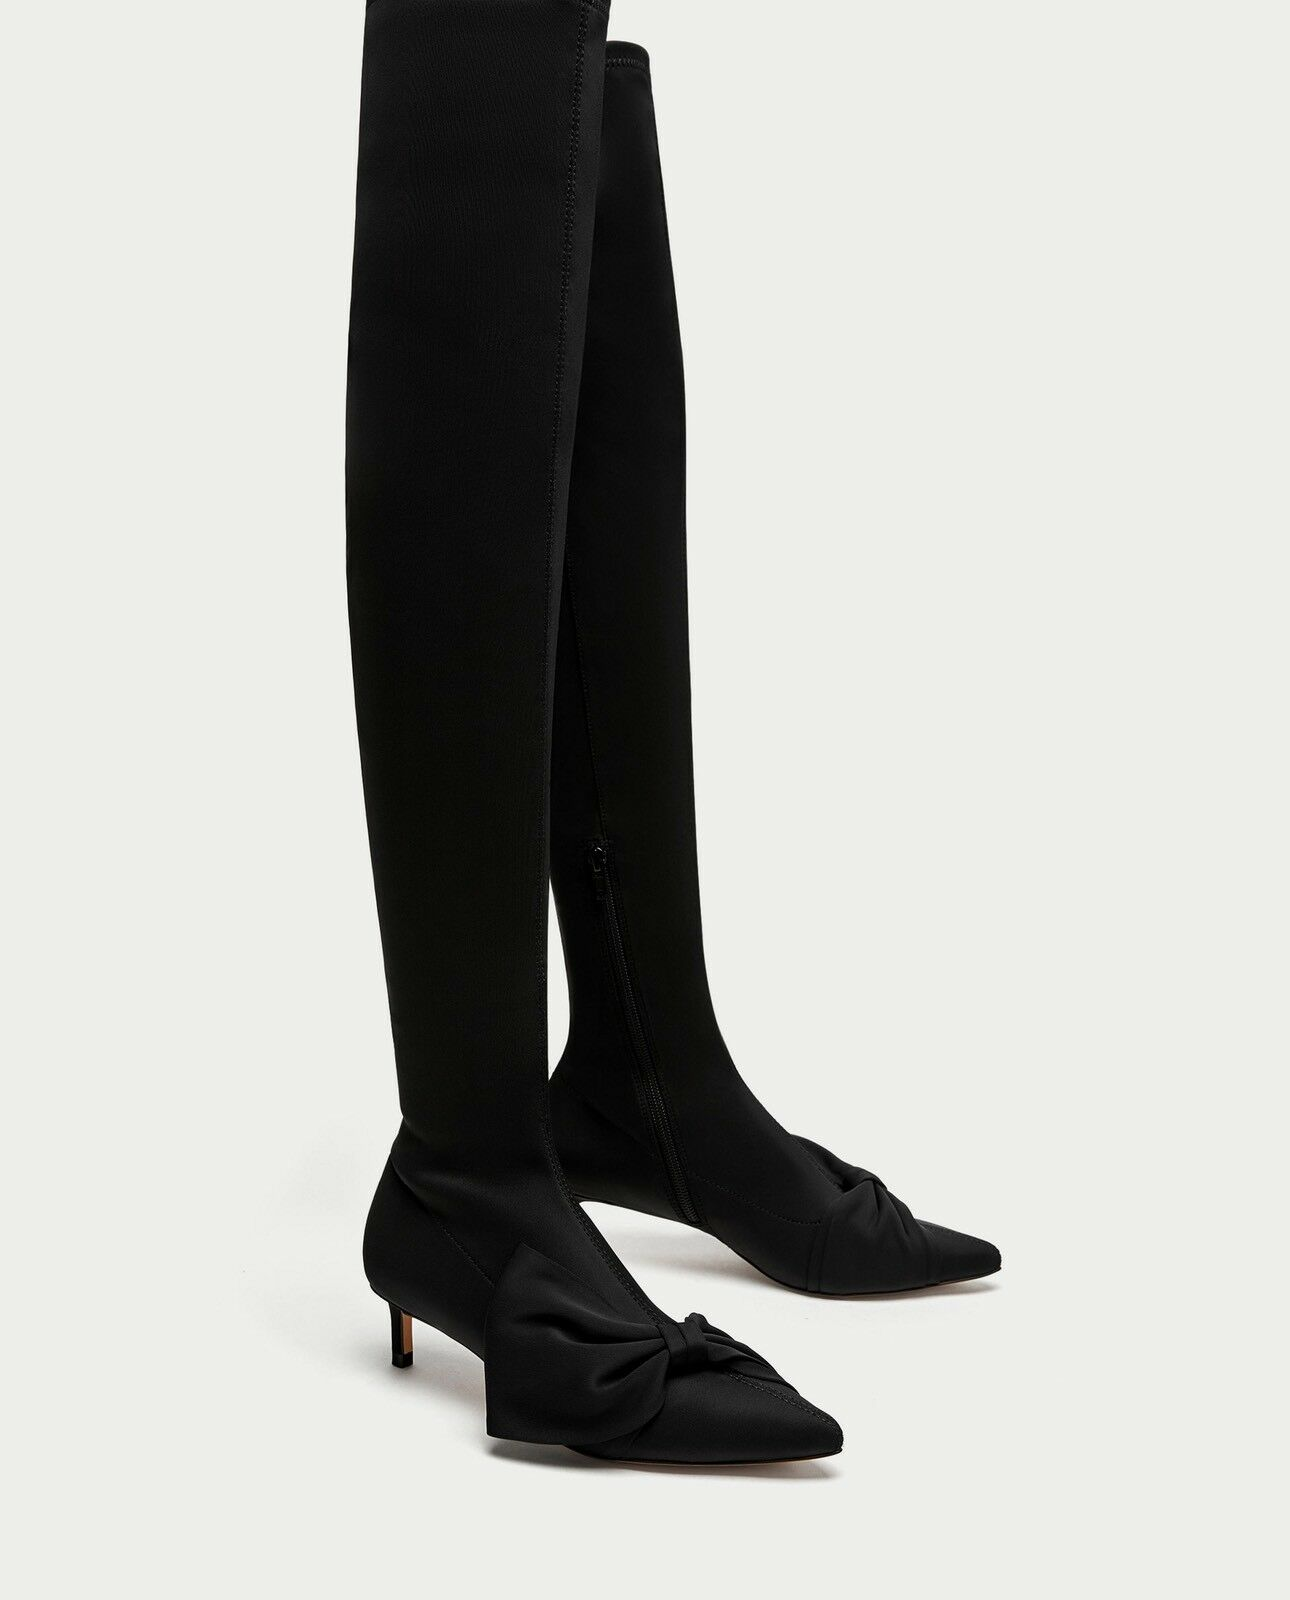 Zara AW17 Over The Knee High Heel Boots With Bows Size 8 EUR 39 NWT